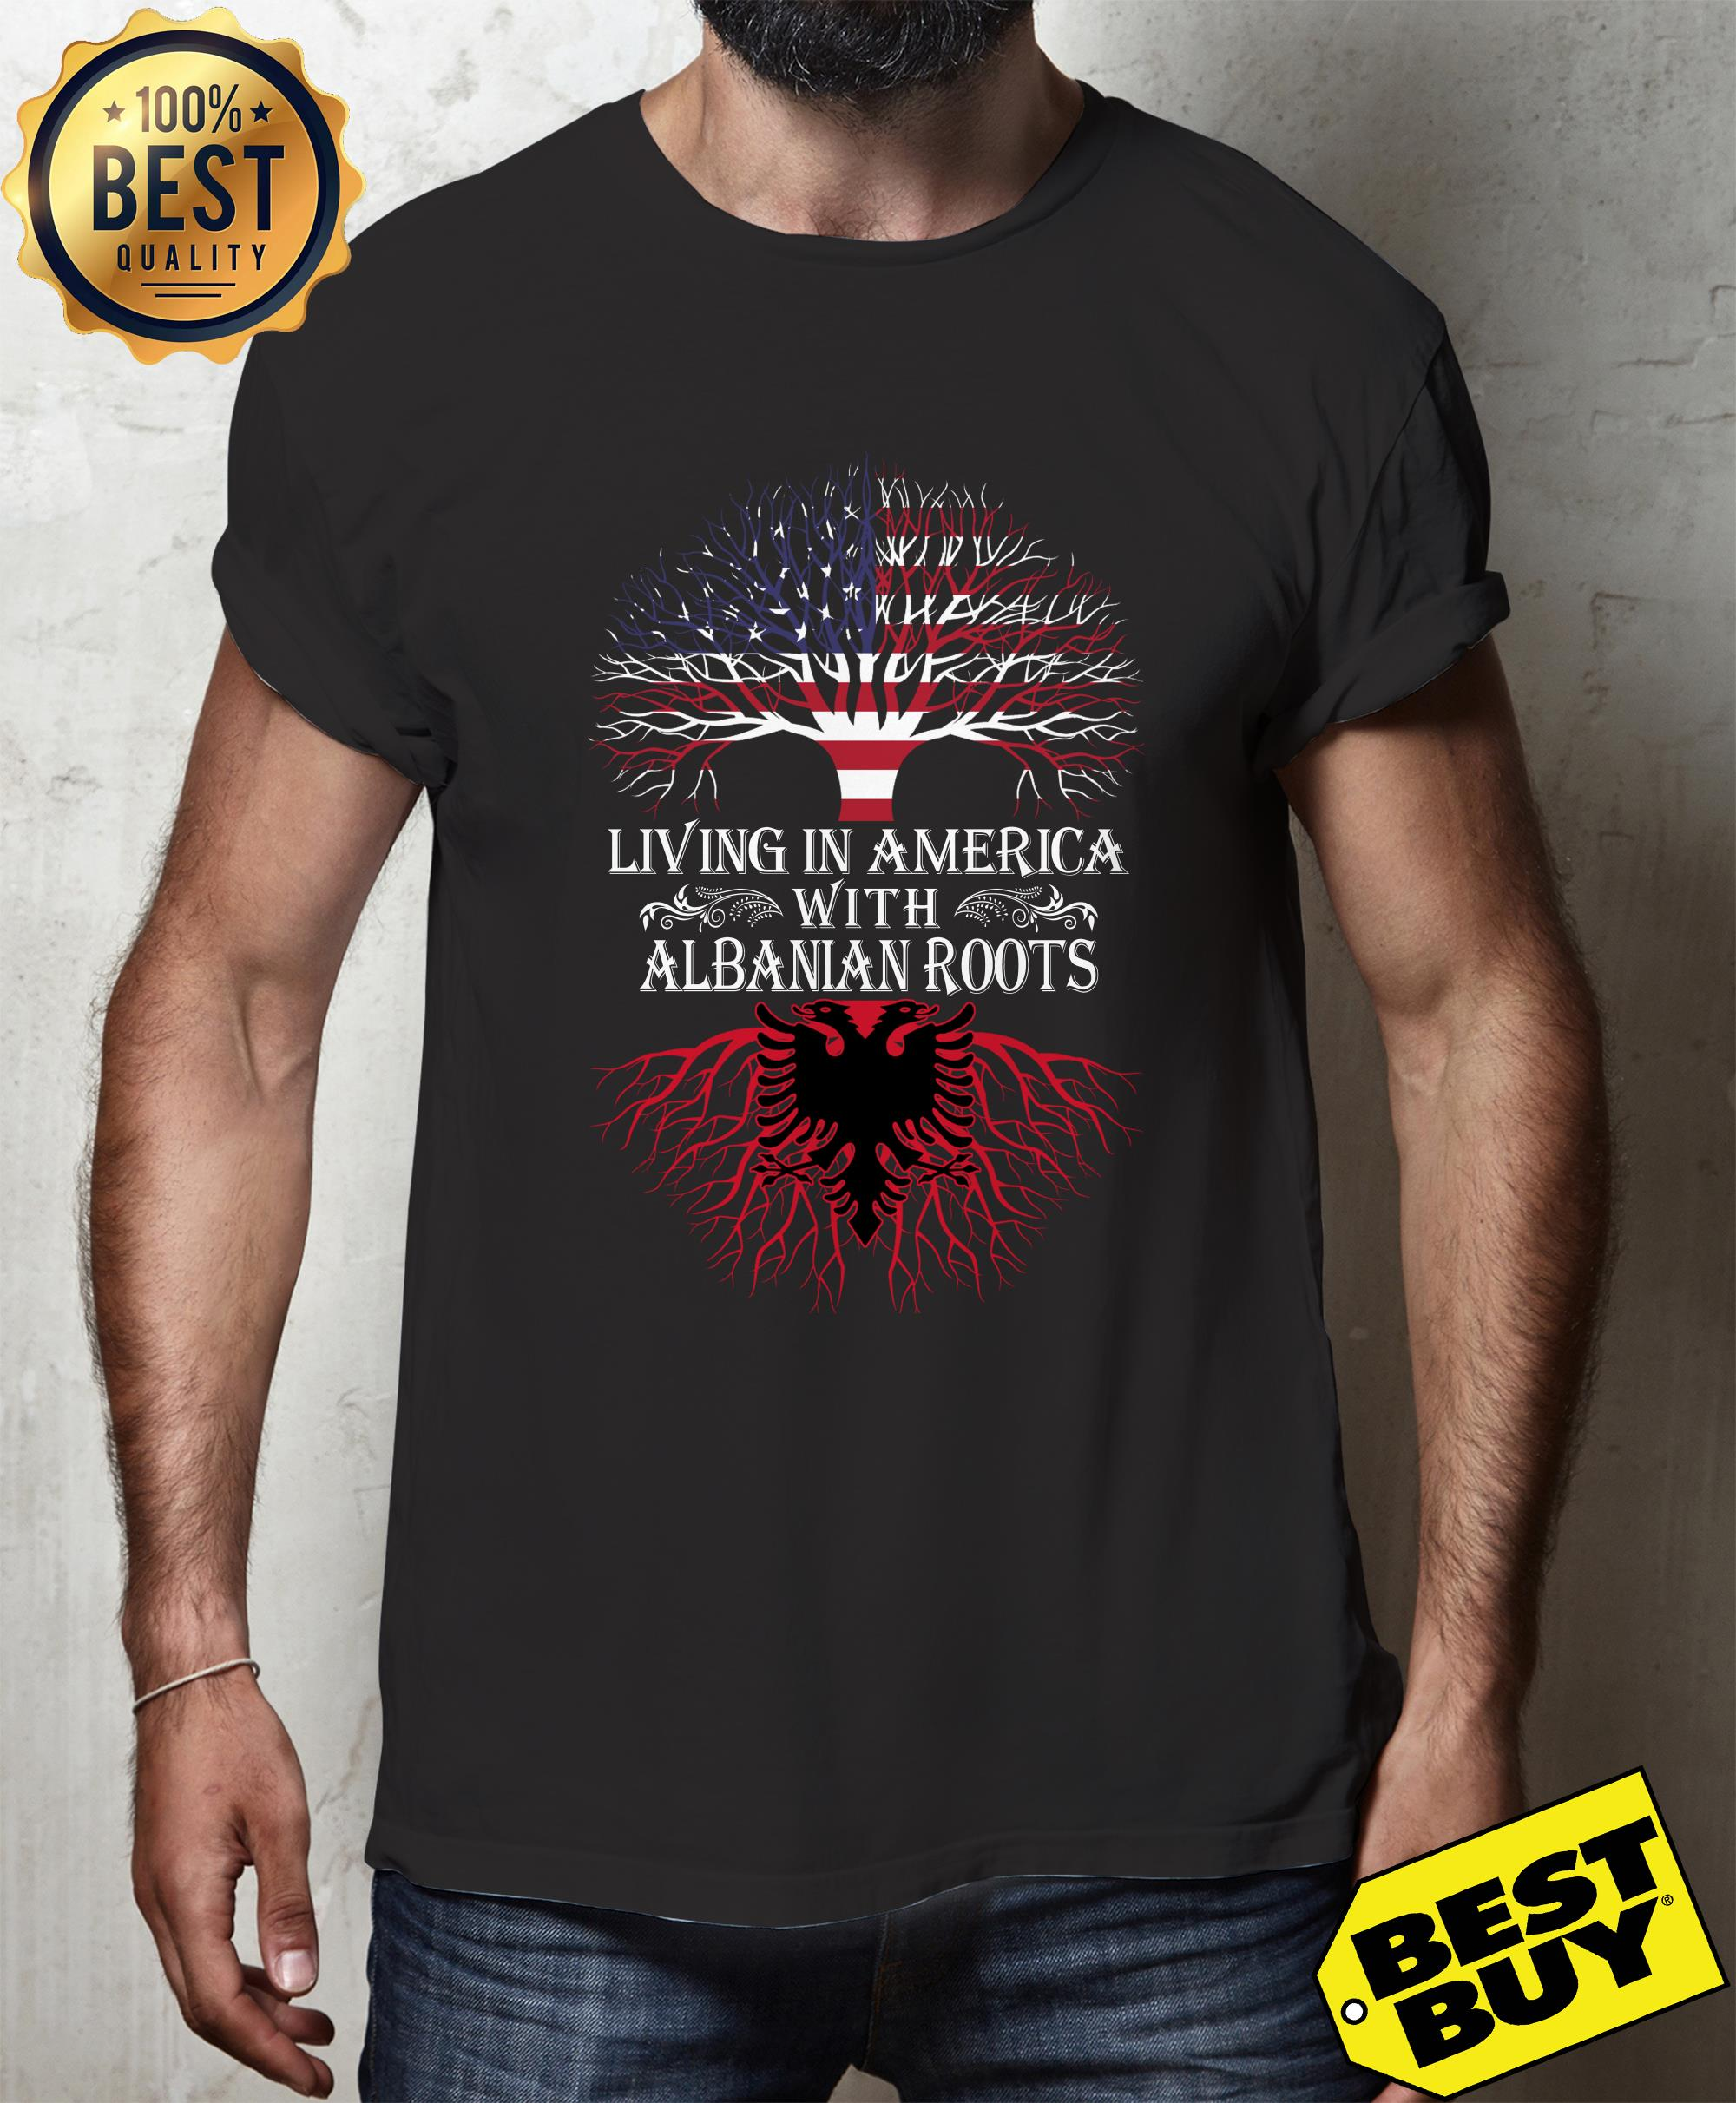 Living in America with Albanian roots shirt